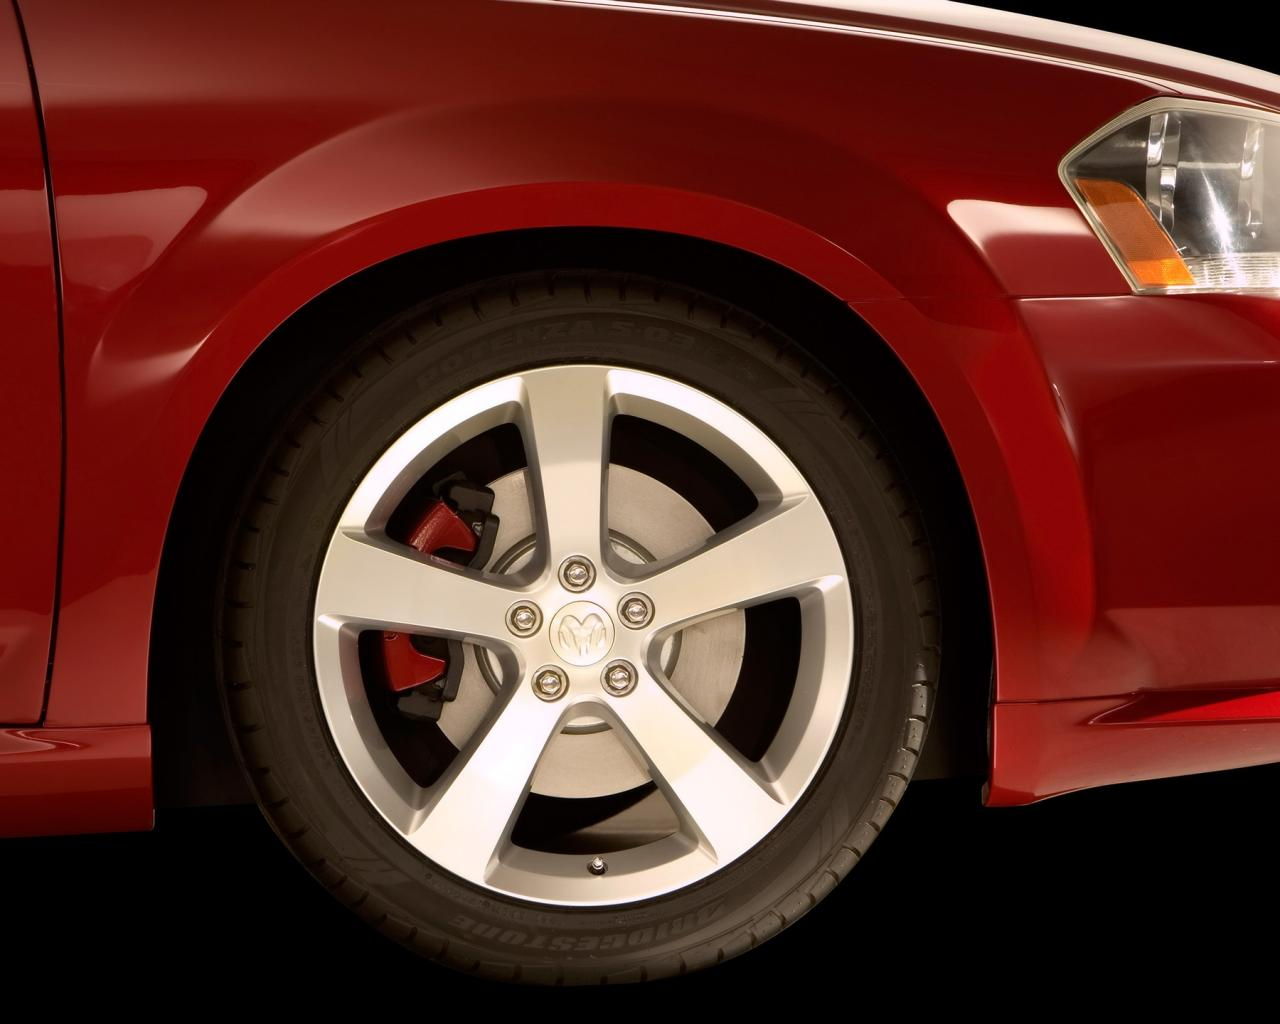 2006 Dodge Avenger Concept Wheel 1280x1024